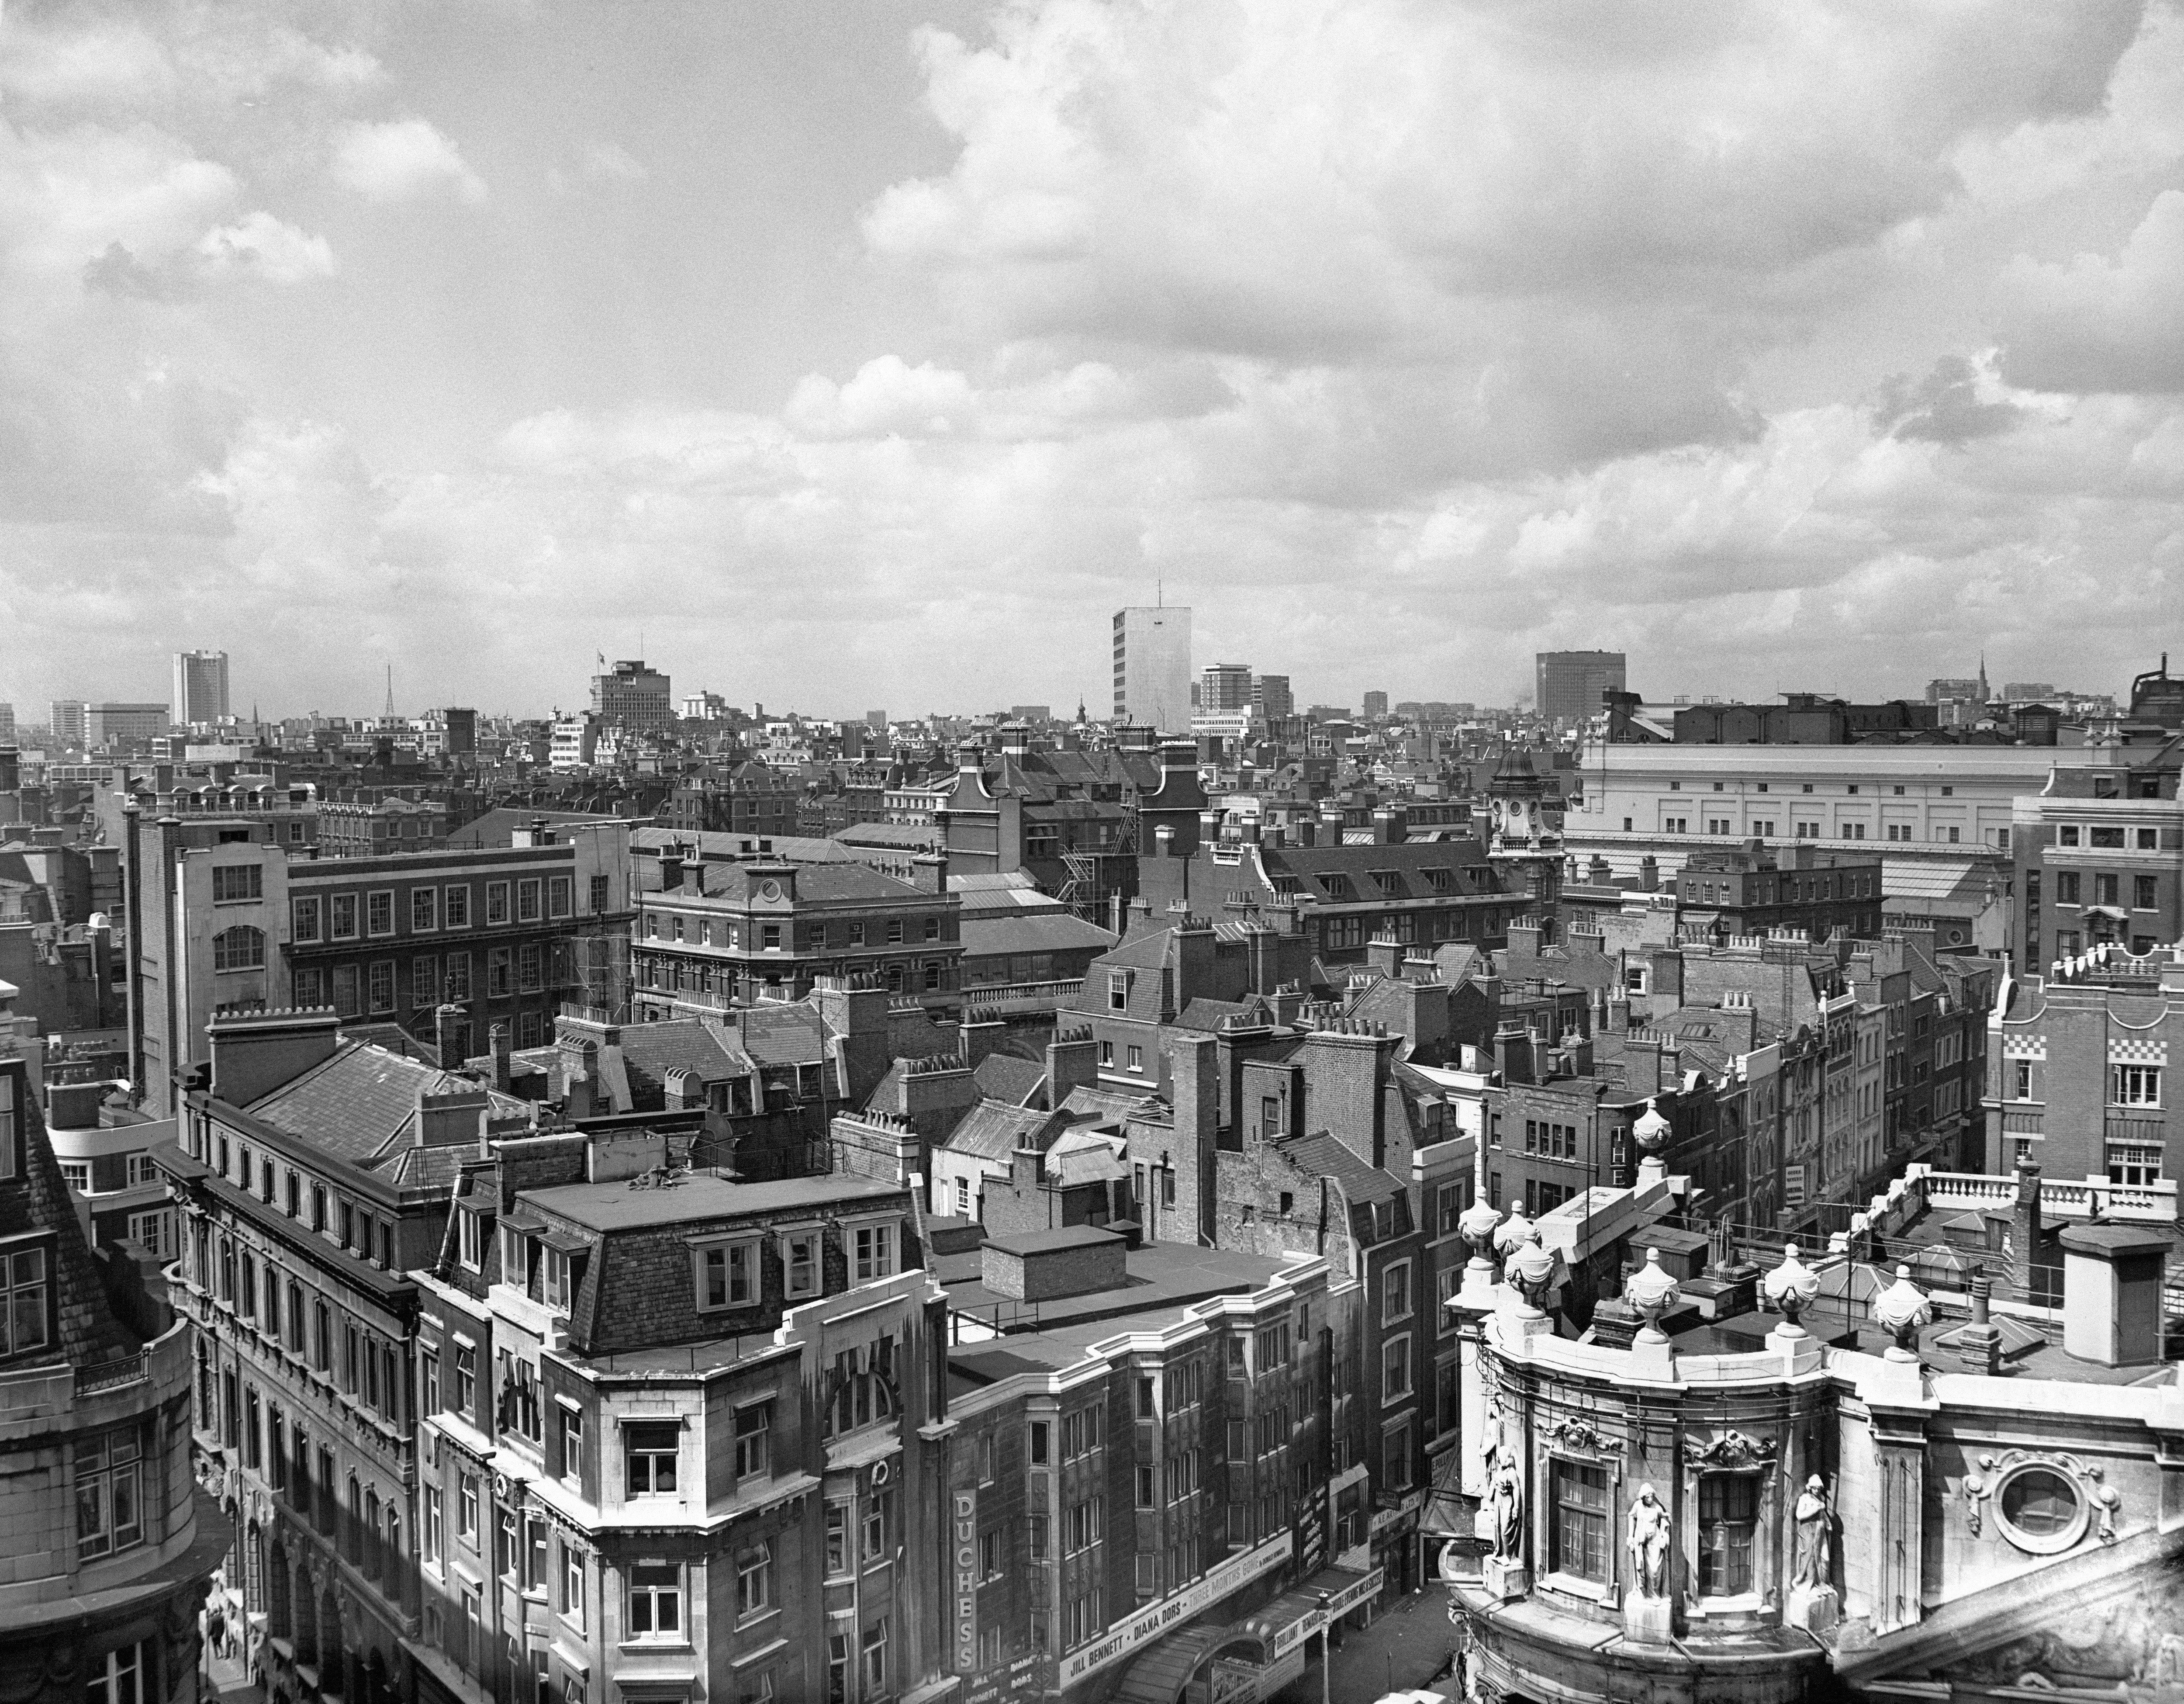 The redevelopment area of Covent Garden pictured from the Strand.